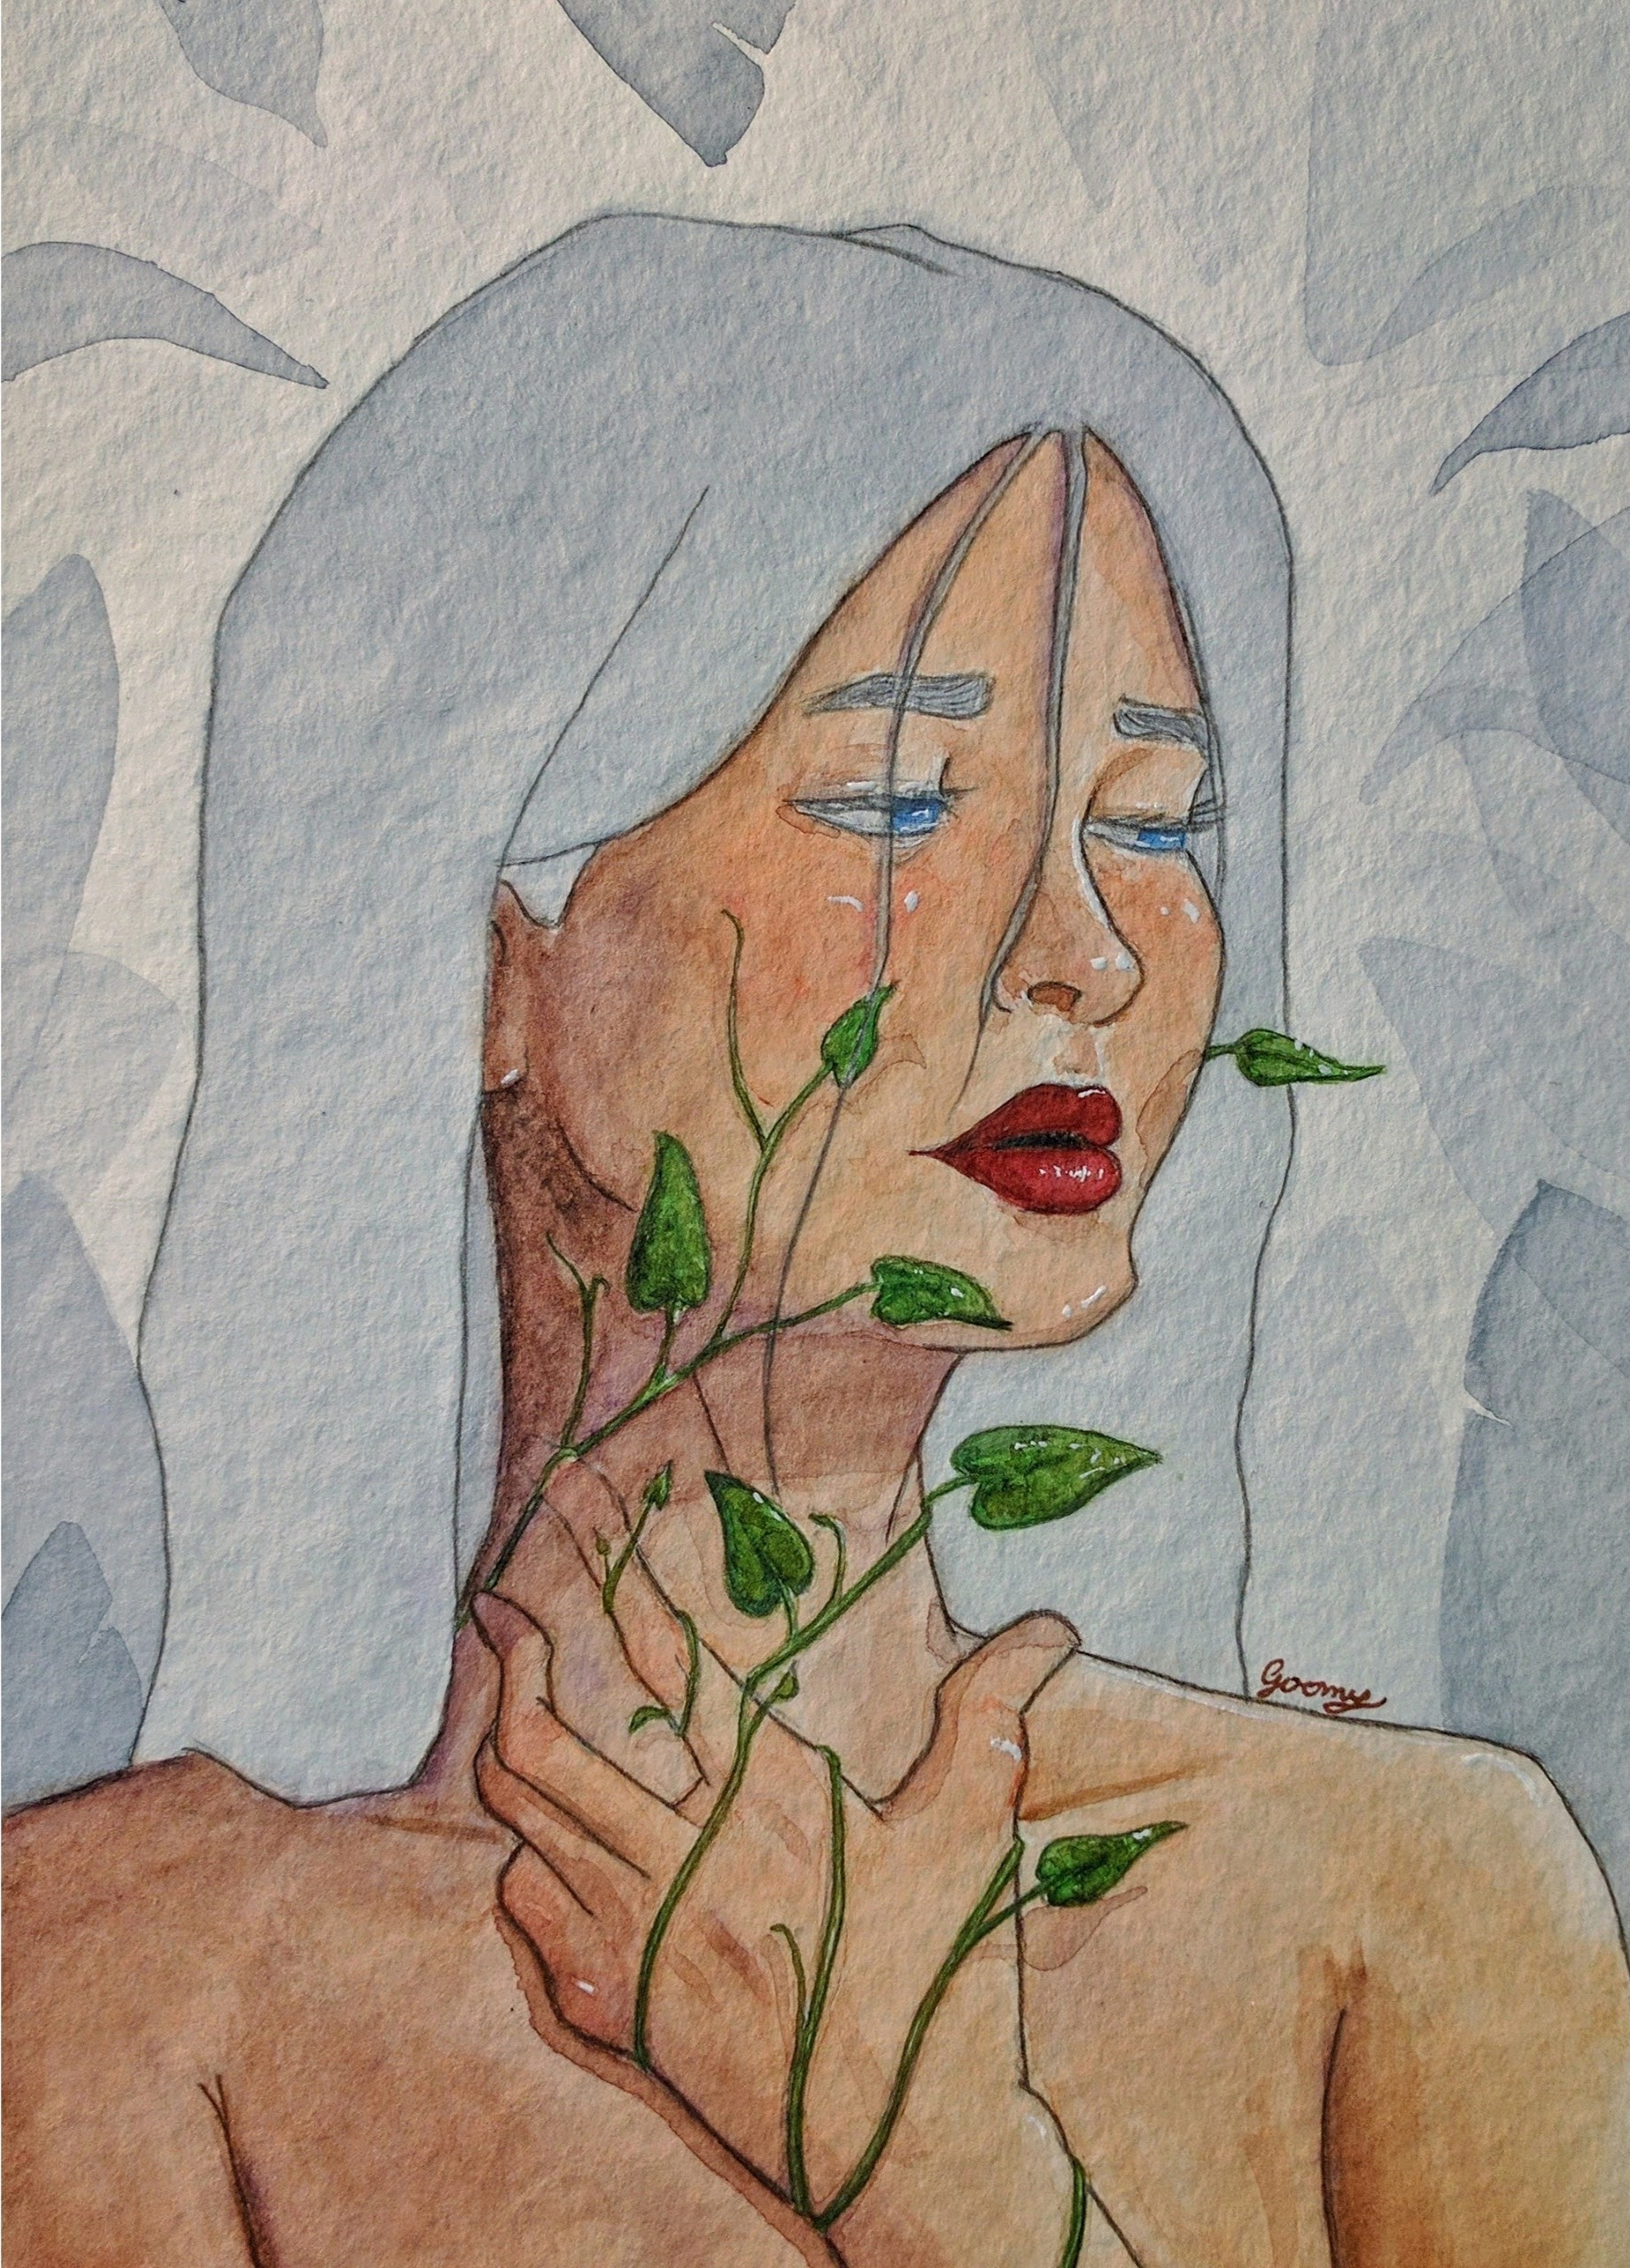 watercolour drawing of a white-haired woman looking solemnly to the side while holding her throat. her throat and hand are covered in vines